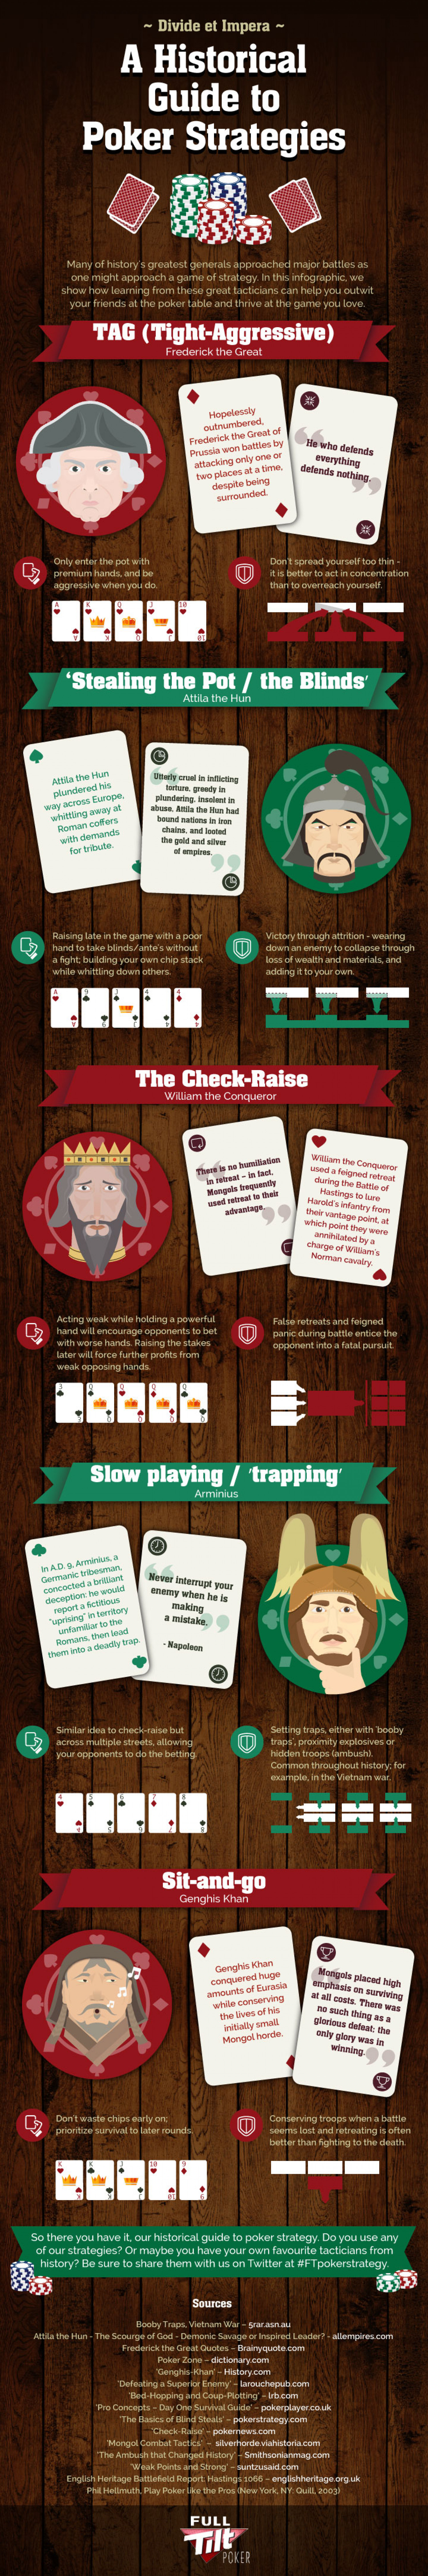 Divide Et Impera: A Historical Guide to Poker Strategies Infographic